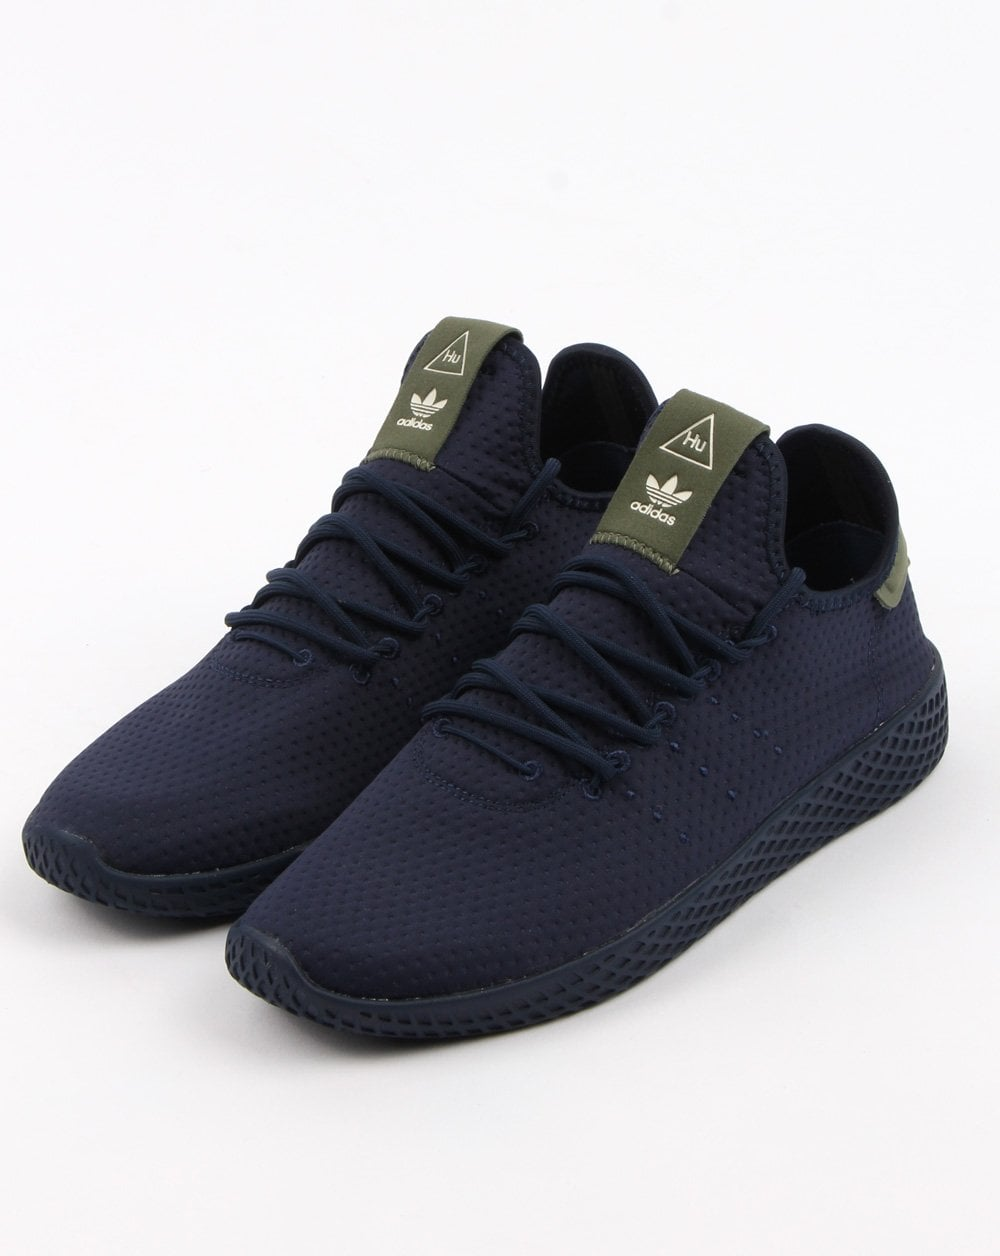 1f183859d adidas Trainers Adidas Pw Tennis Trainers Navy